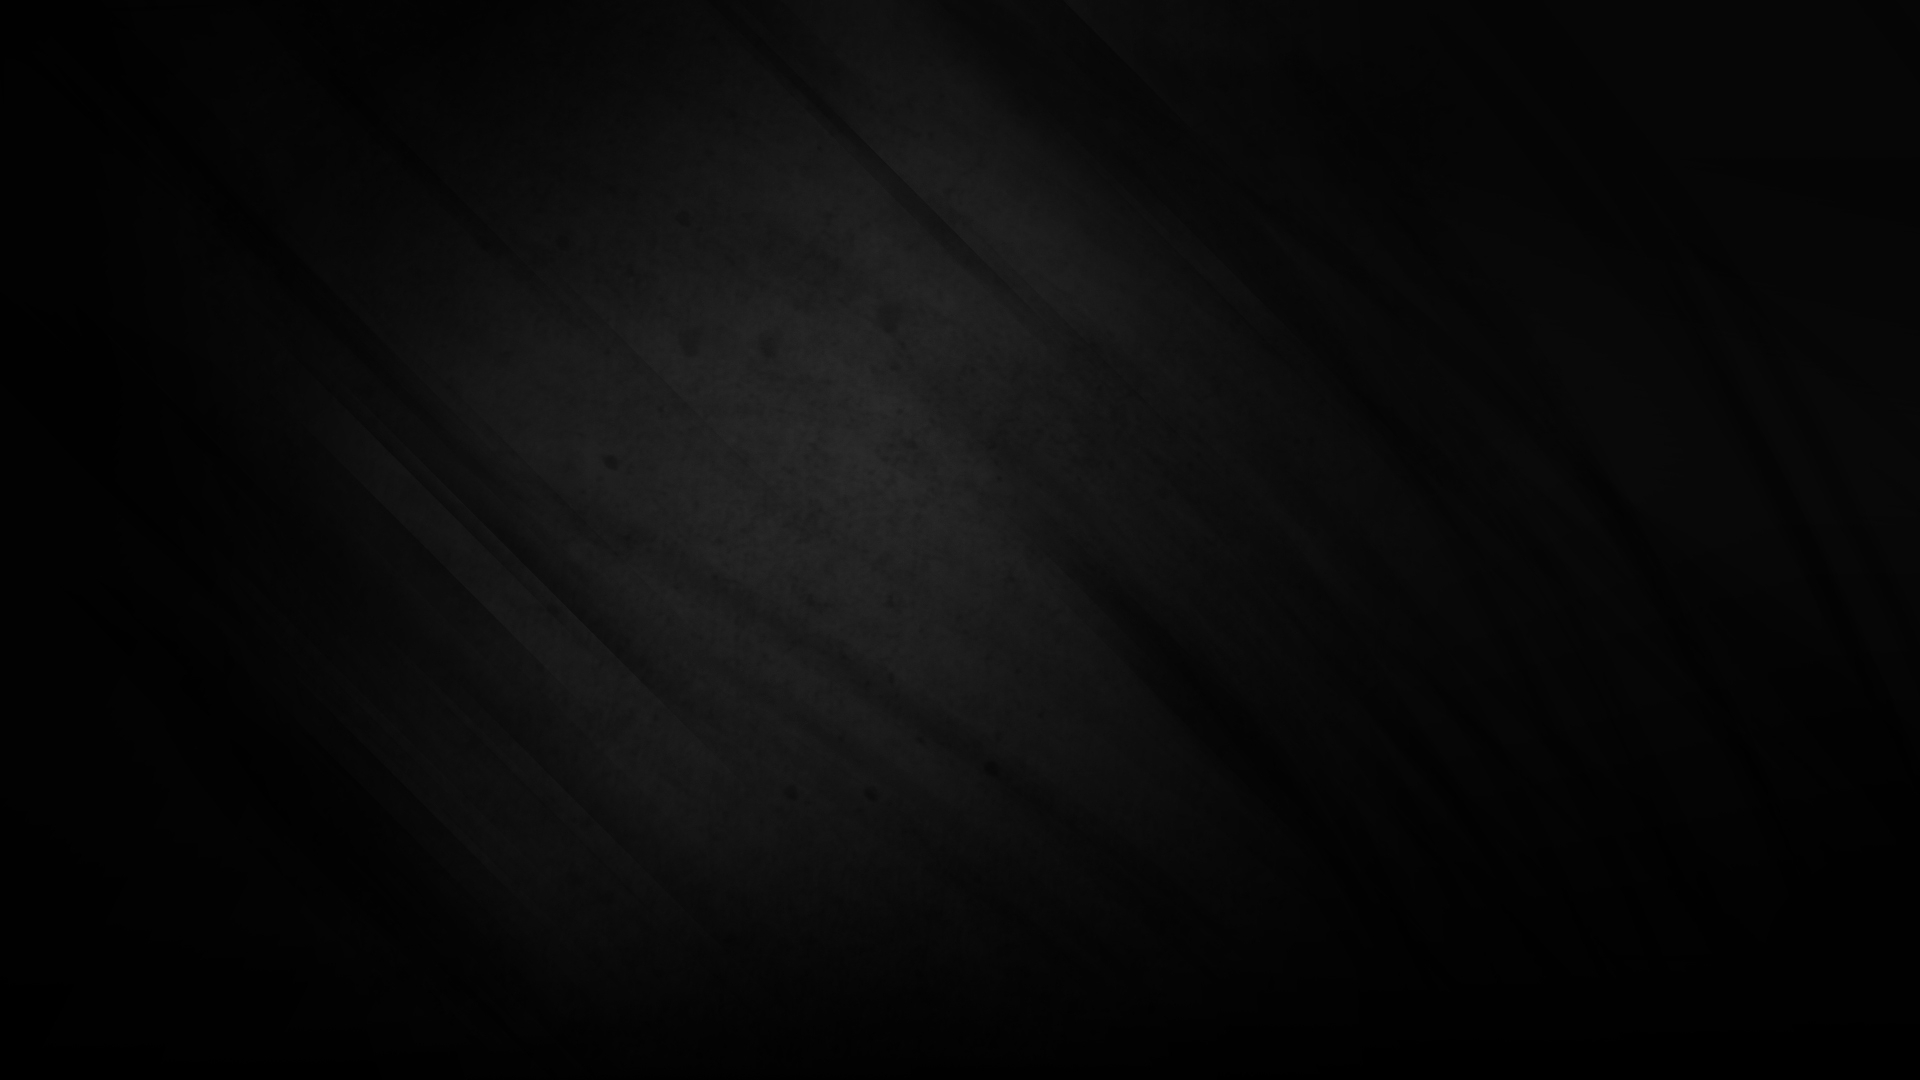 solid black hd wallpapers | backgrounds